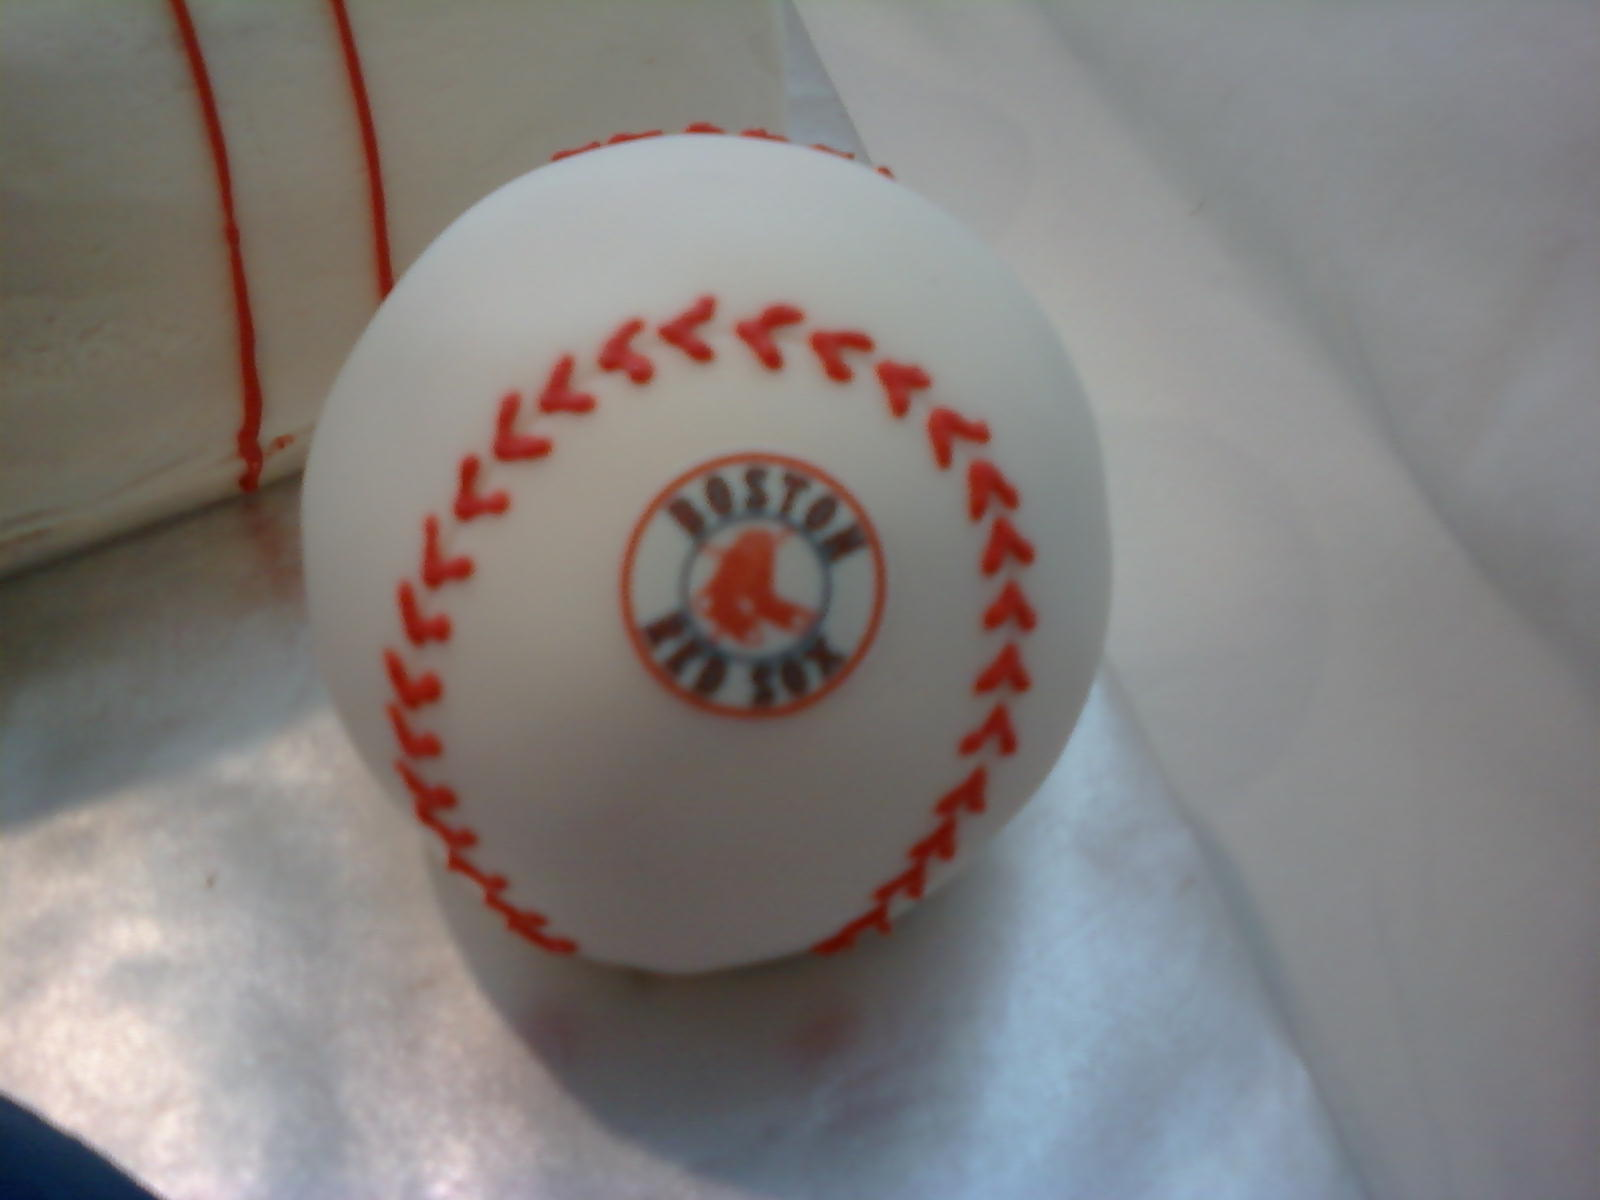 Red Sox ball